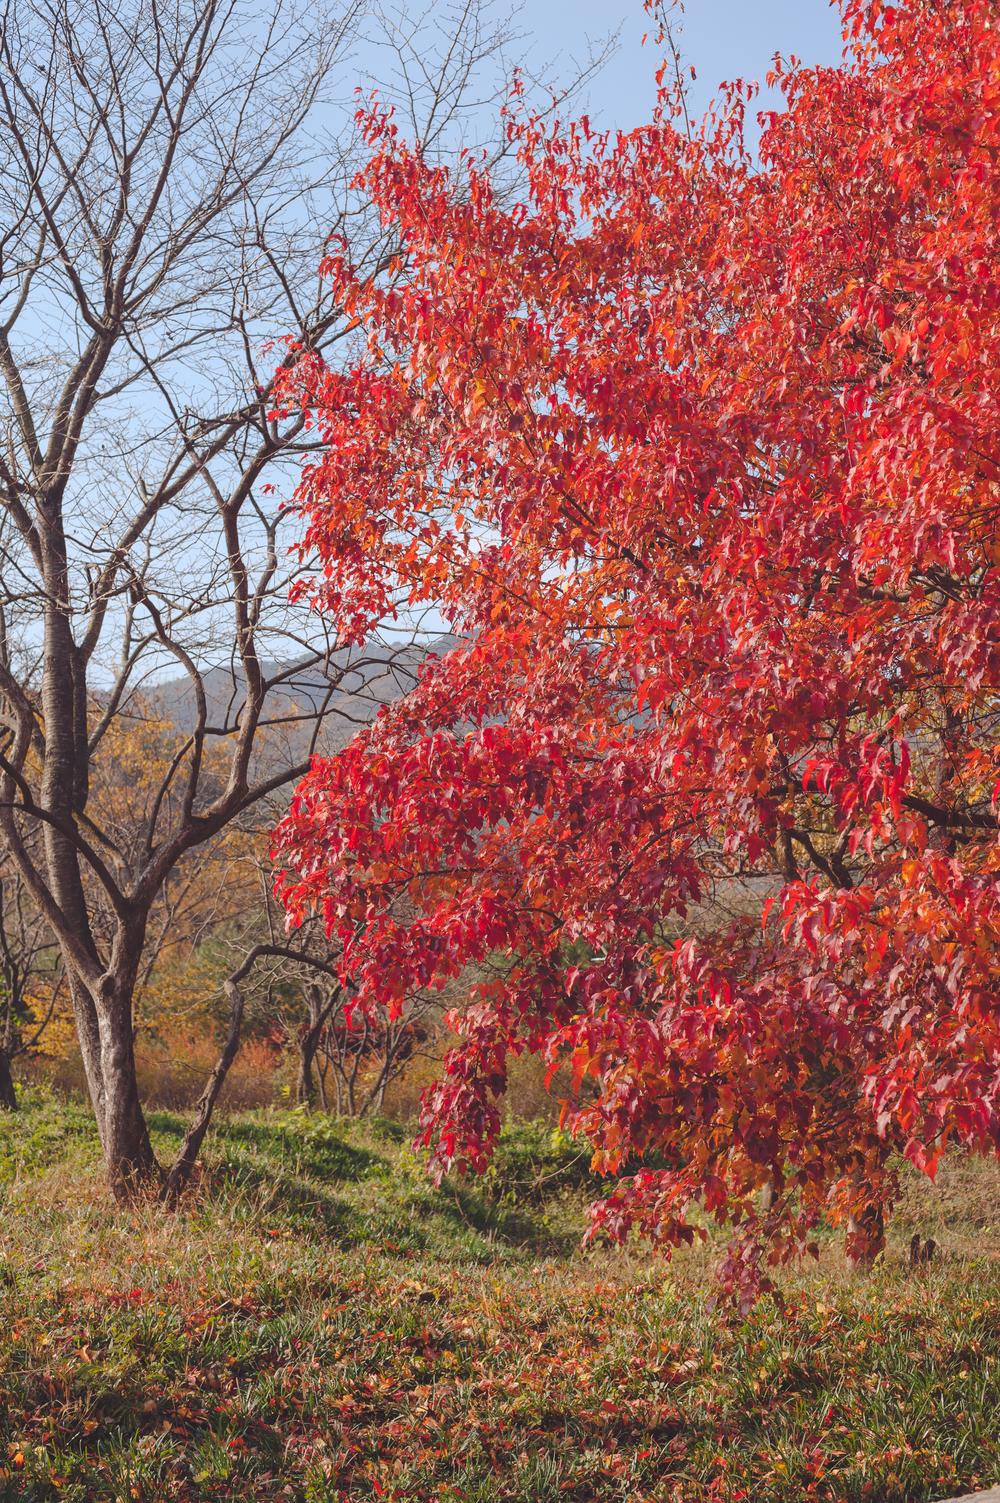 AutumnInKoreaSoenunsaParkFallLeaves (27 of 37).jpg